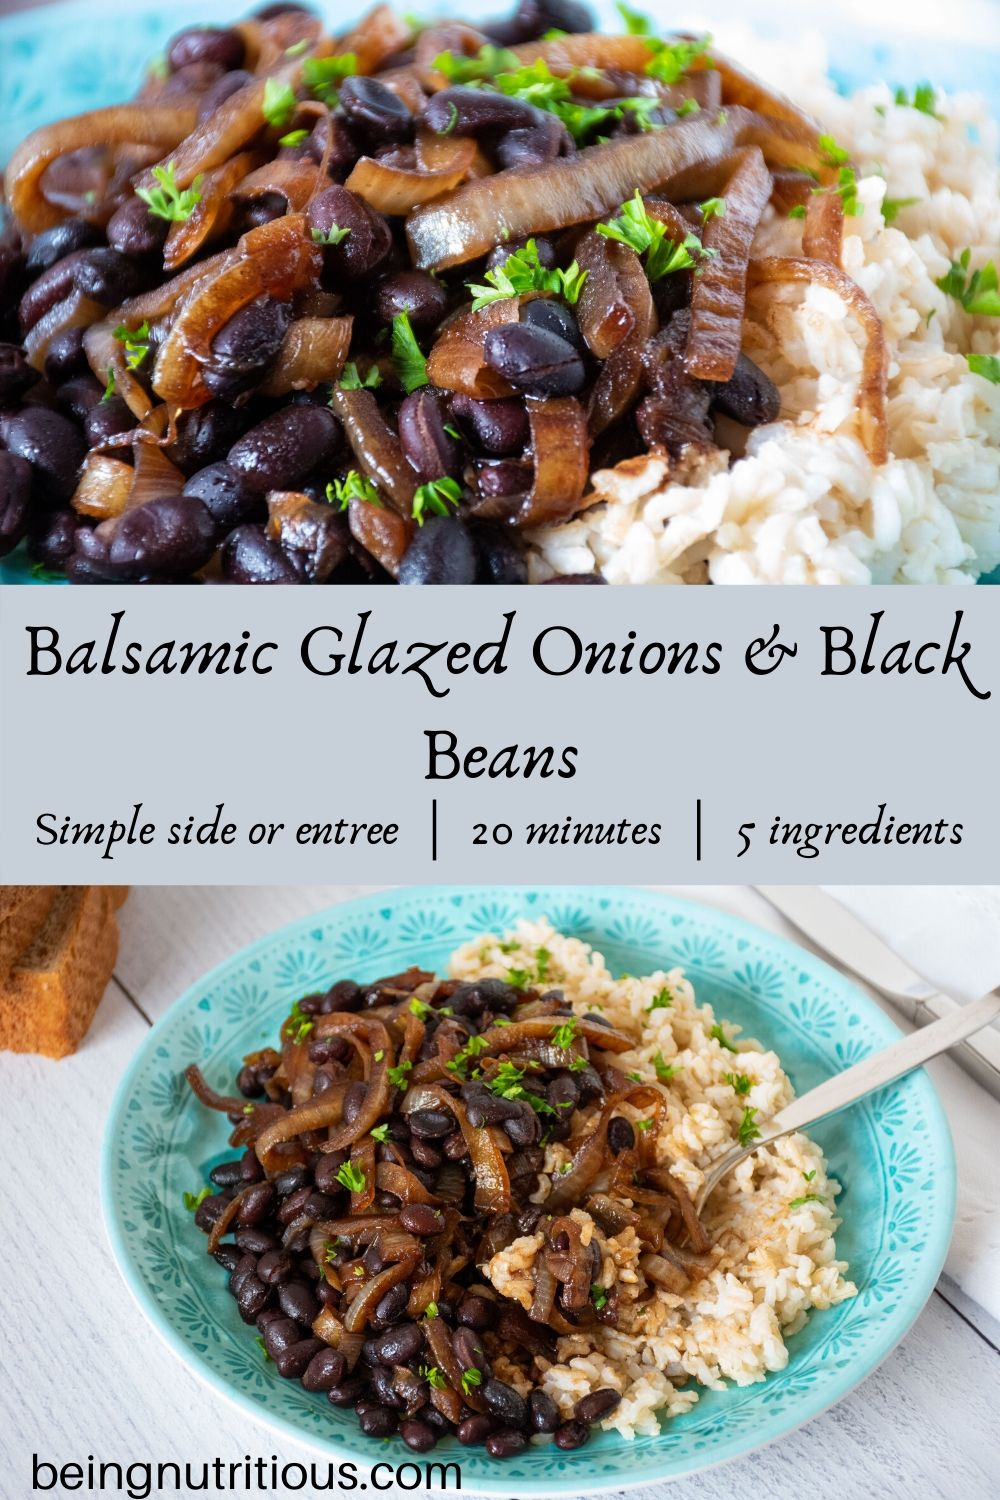 Balsamic glazed onions and black beans split image with close up of recipe and image of entire plate with rice.